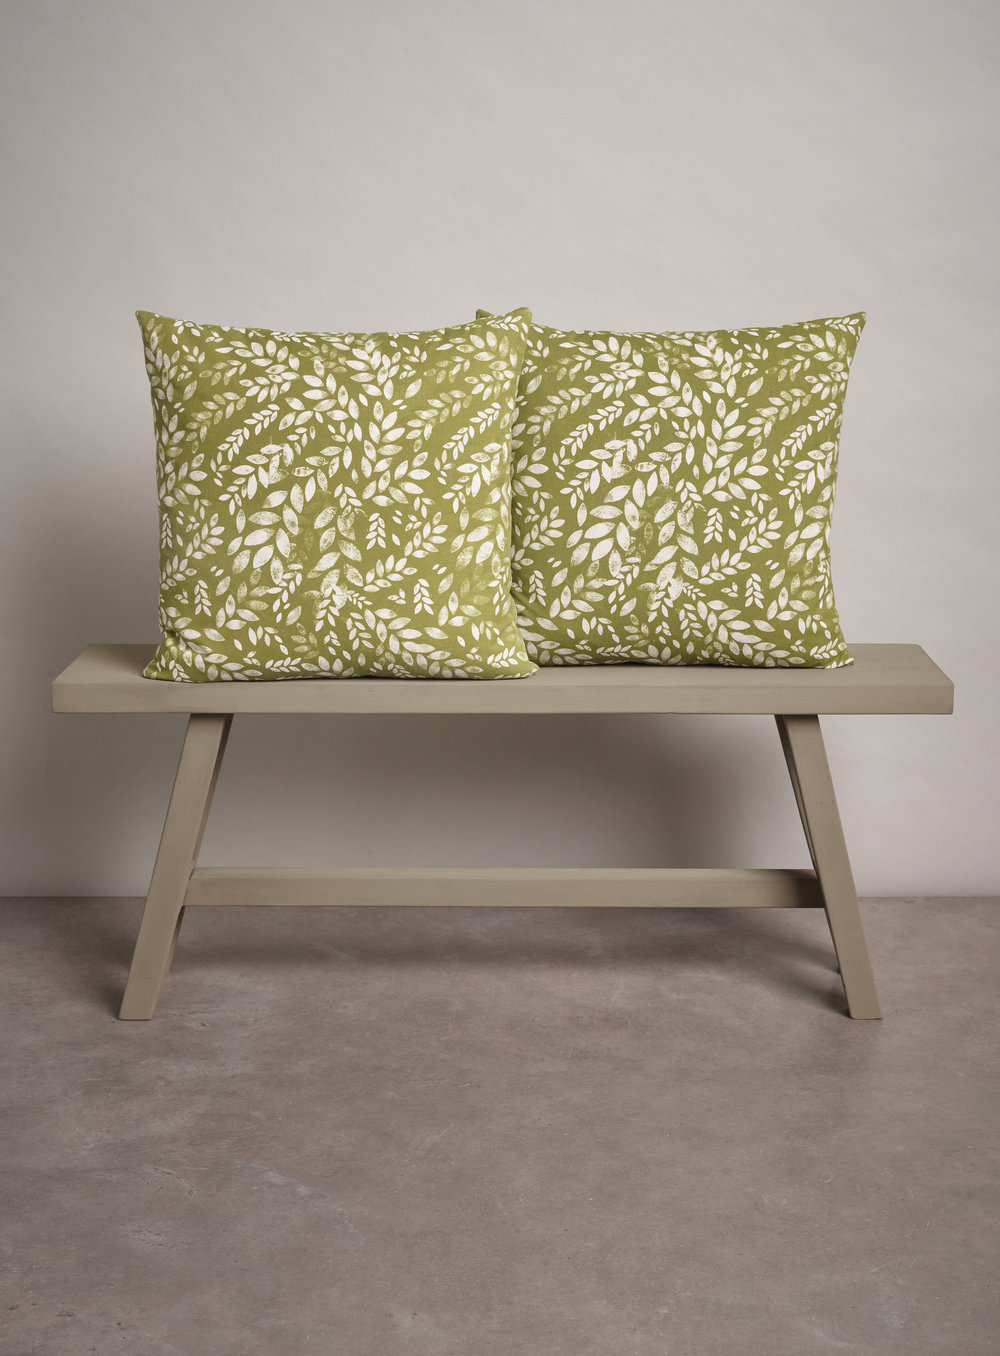 1. NEW POS - V&R ThroughLeaves_OliveOchre_Cushion 2019.jpg